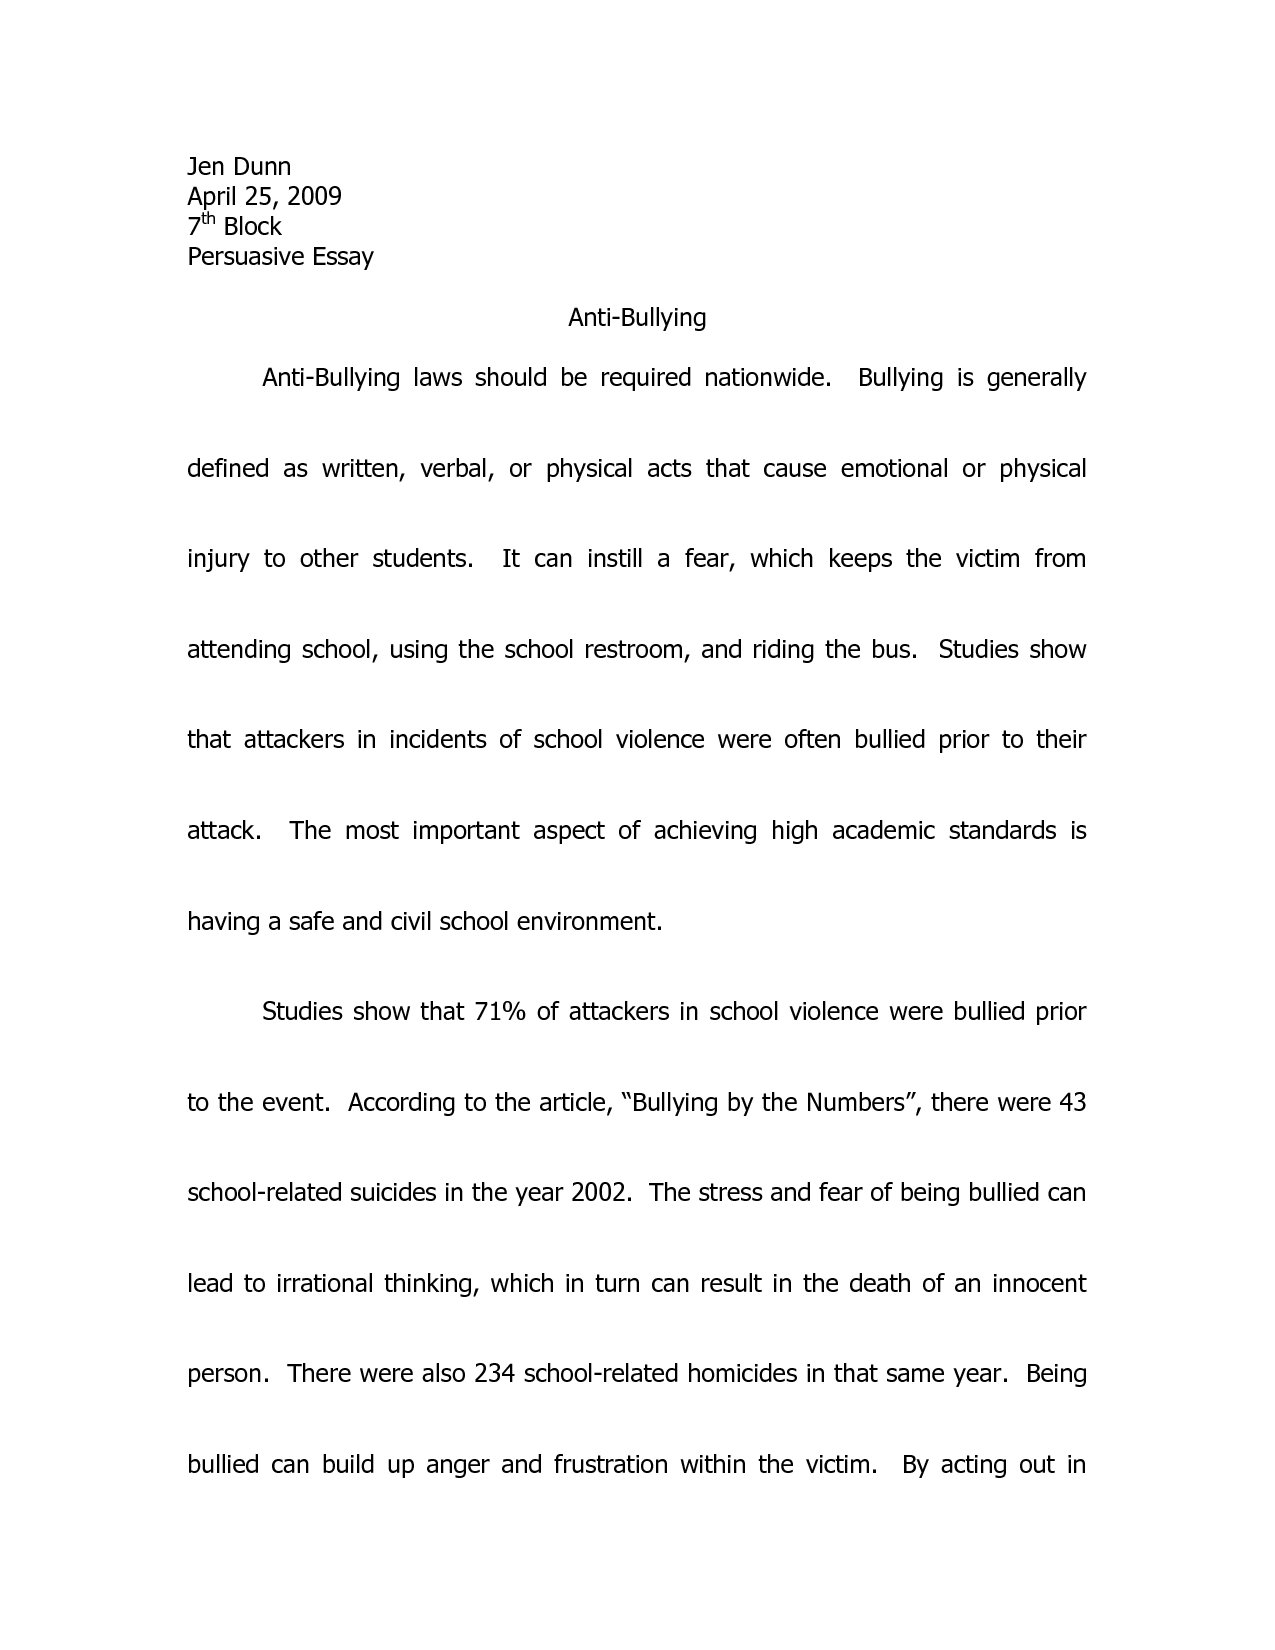 001 Essay Example Persuasive About Bullying On Speech Good Books To Write Essays Topics Cyberbullying Tudors Ks2 Websi Cyber Stunning In Schools Introduction Tagalog Full